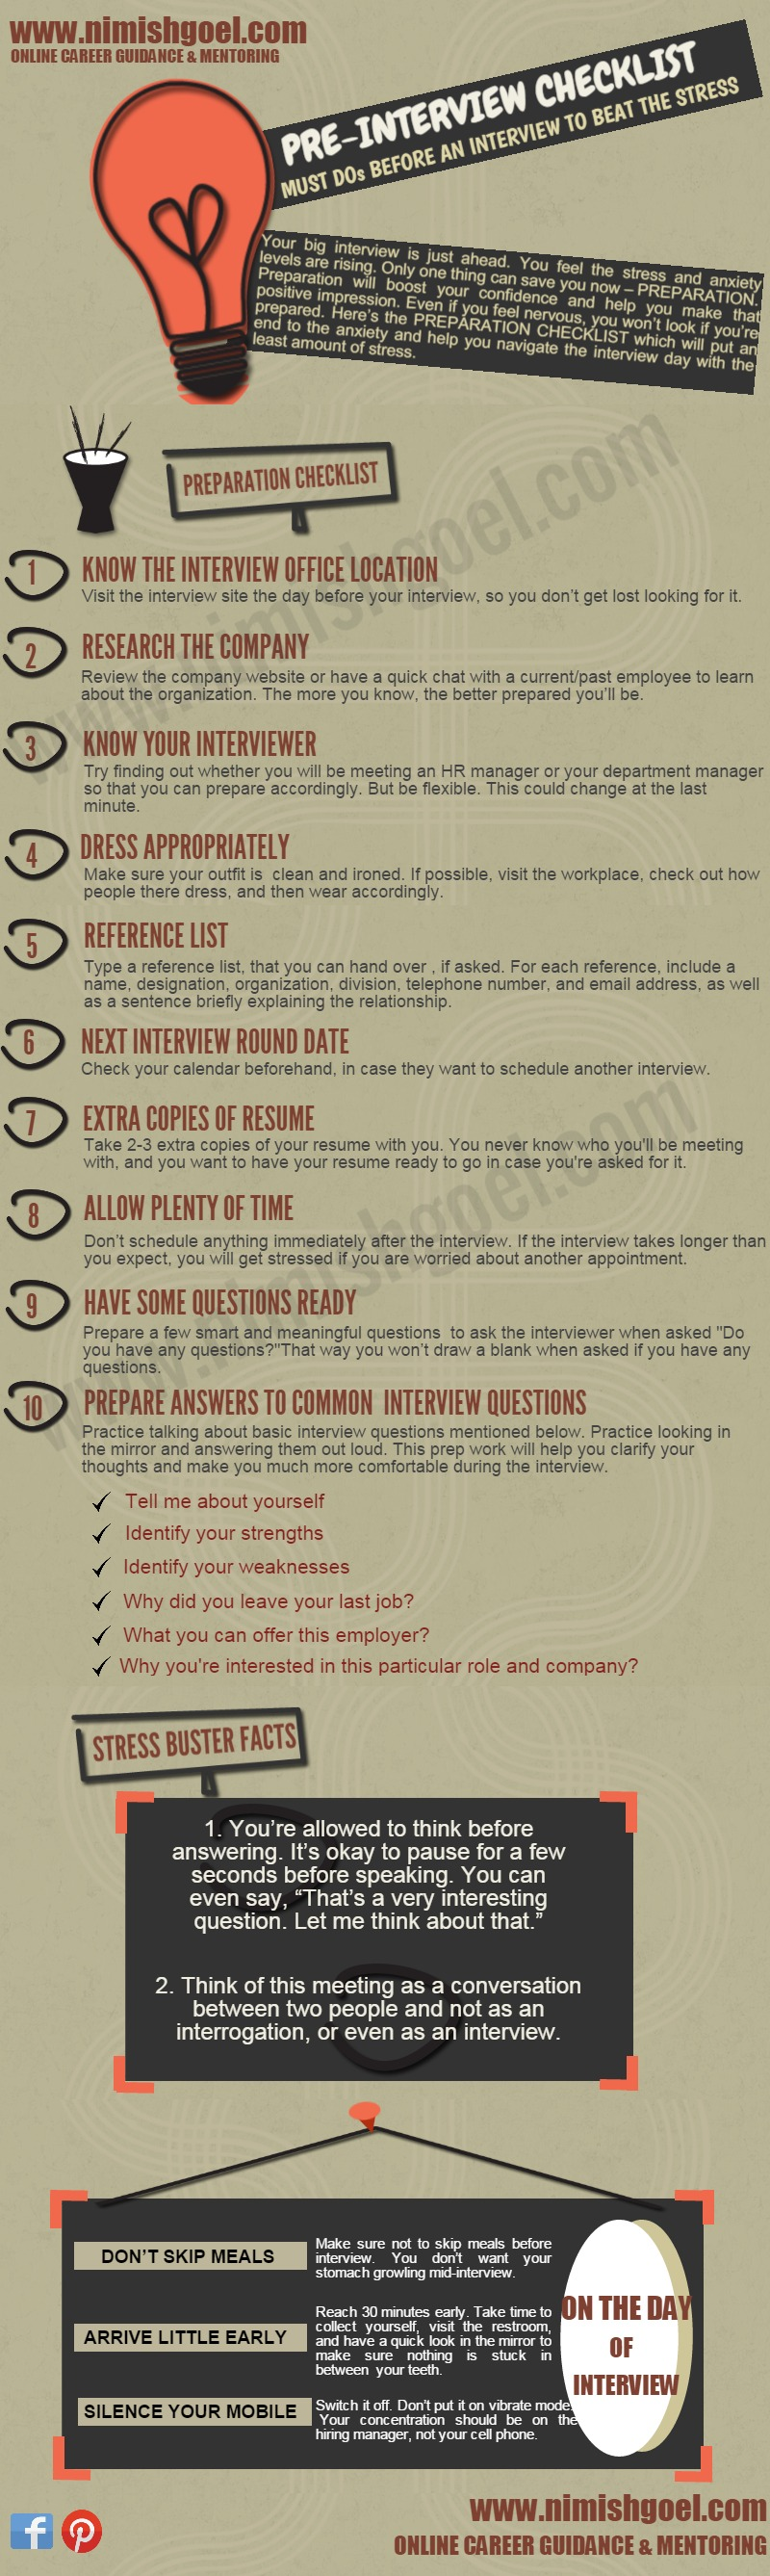 pre interview checklist must dos before an interview to beat the pre interview checklist must dos before an interview to beat the stress your big